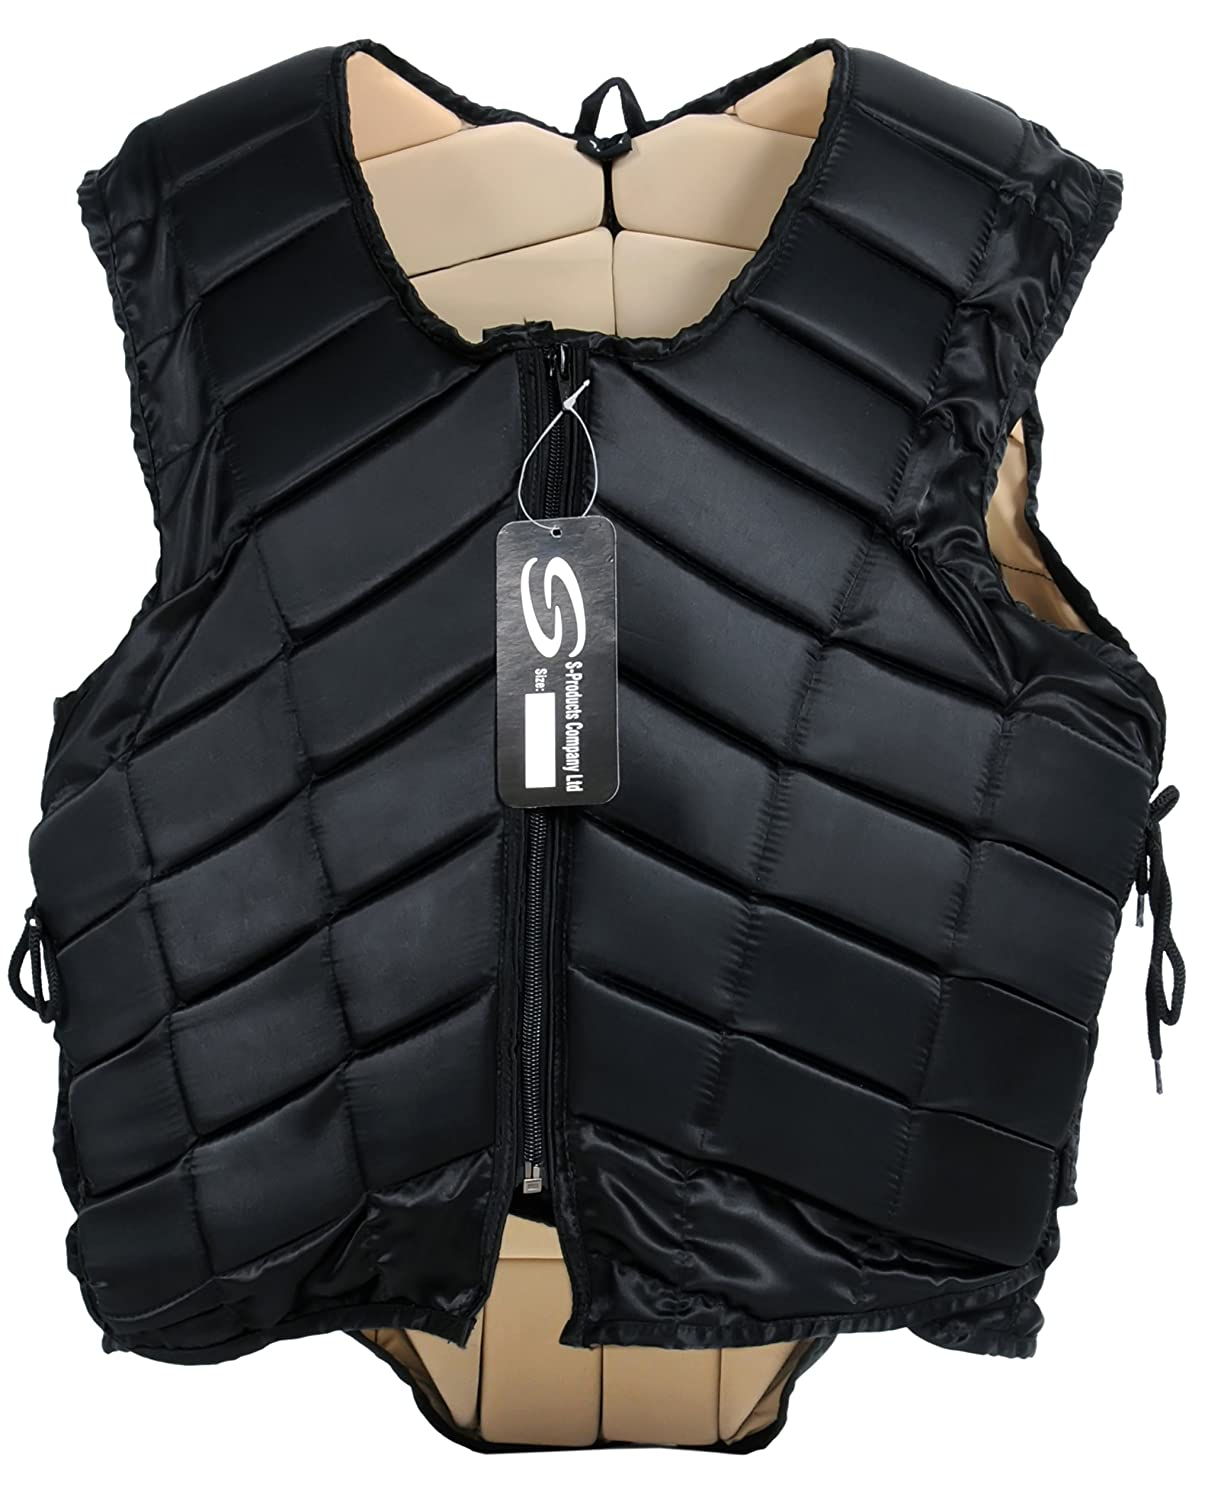 ADULT HORSE RIDING BODY PROTECTOR WITH ADJUSTABLE SIDE LACES S-Products